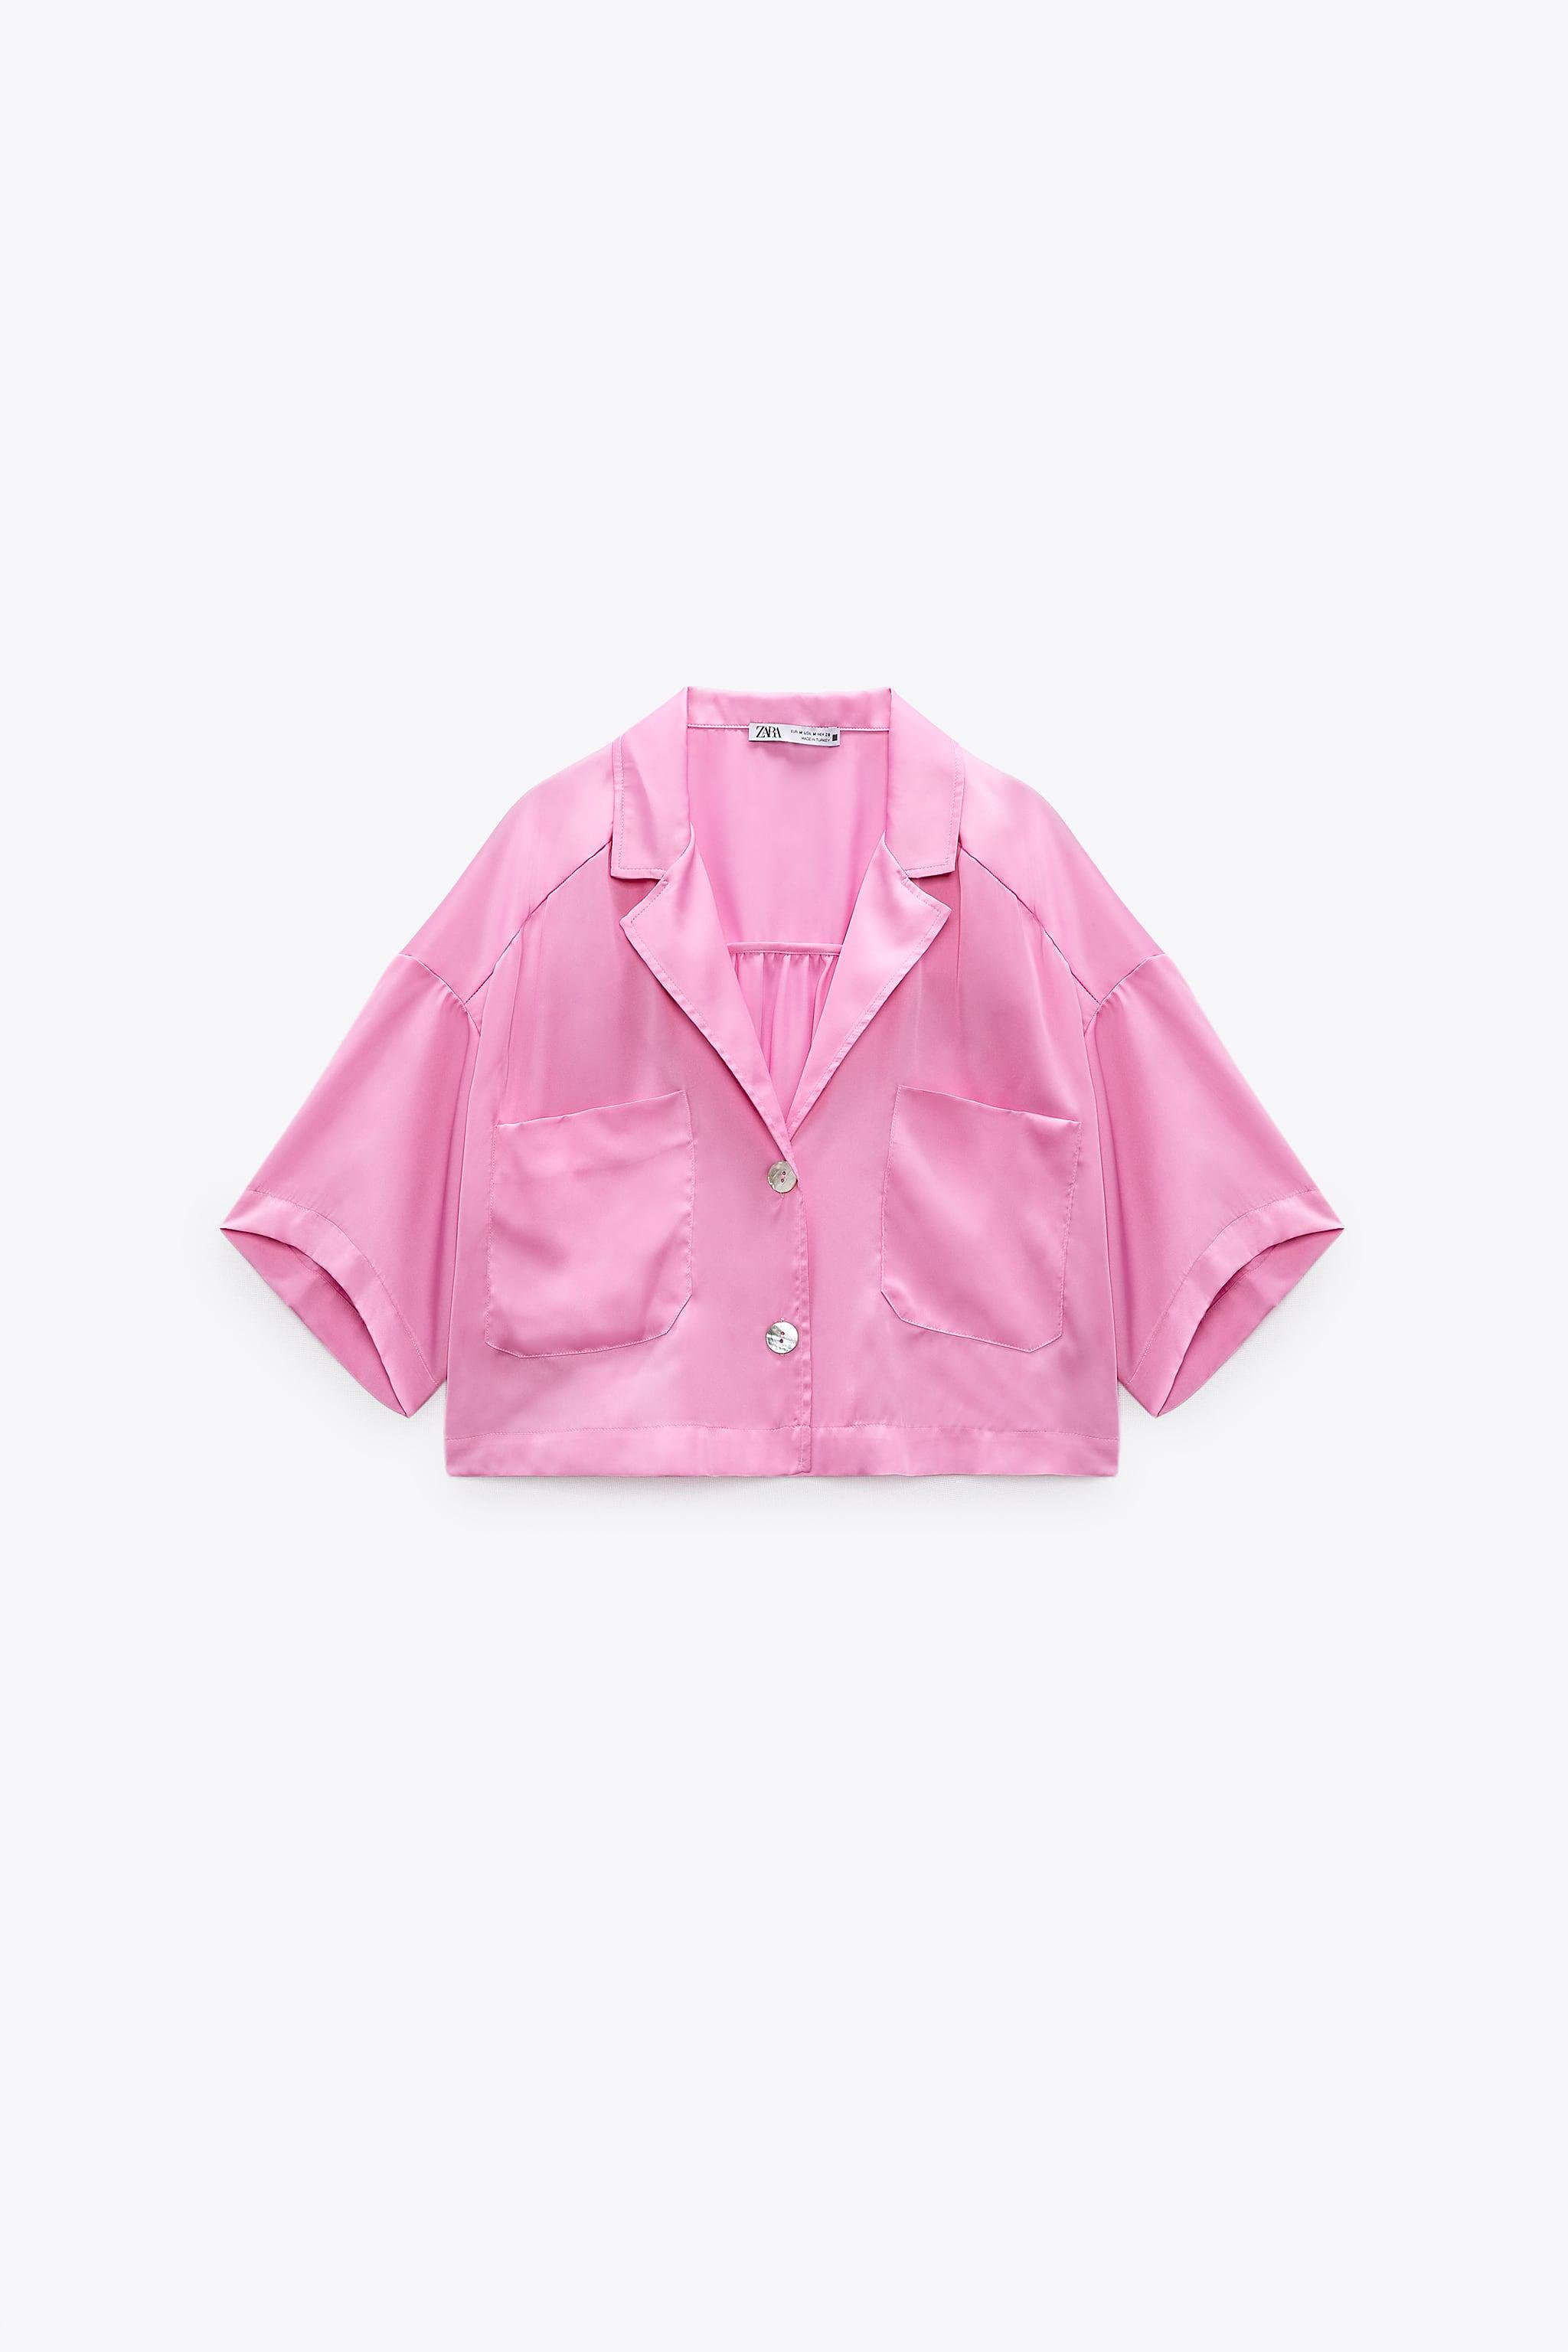 SATIN EFFECT CROPPED BLOUSE